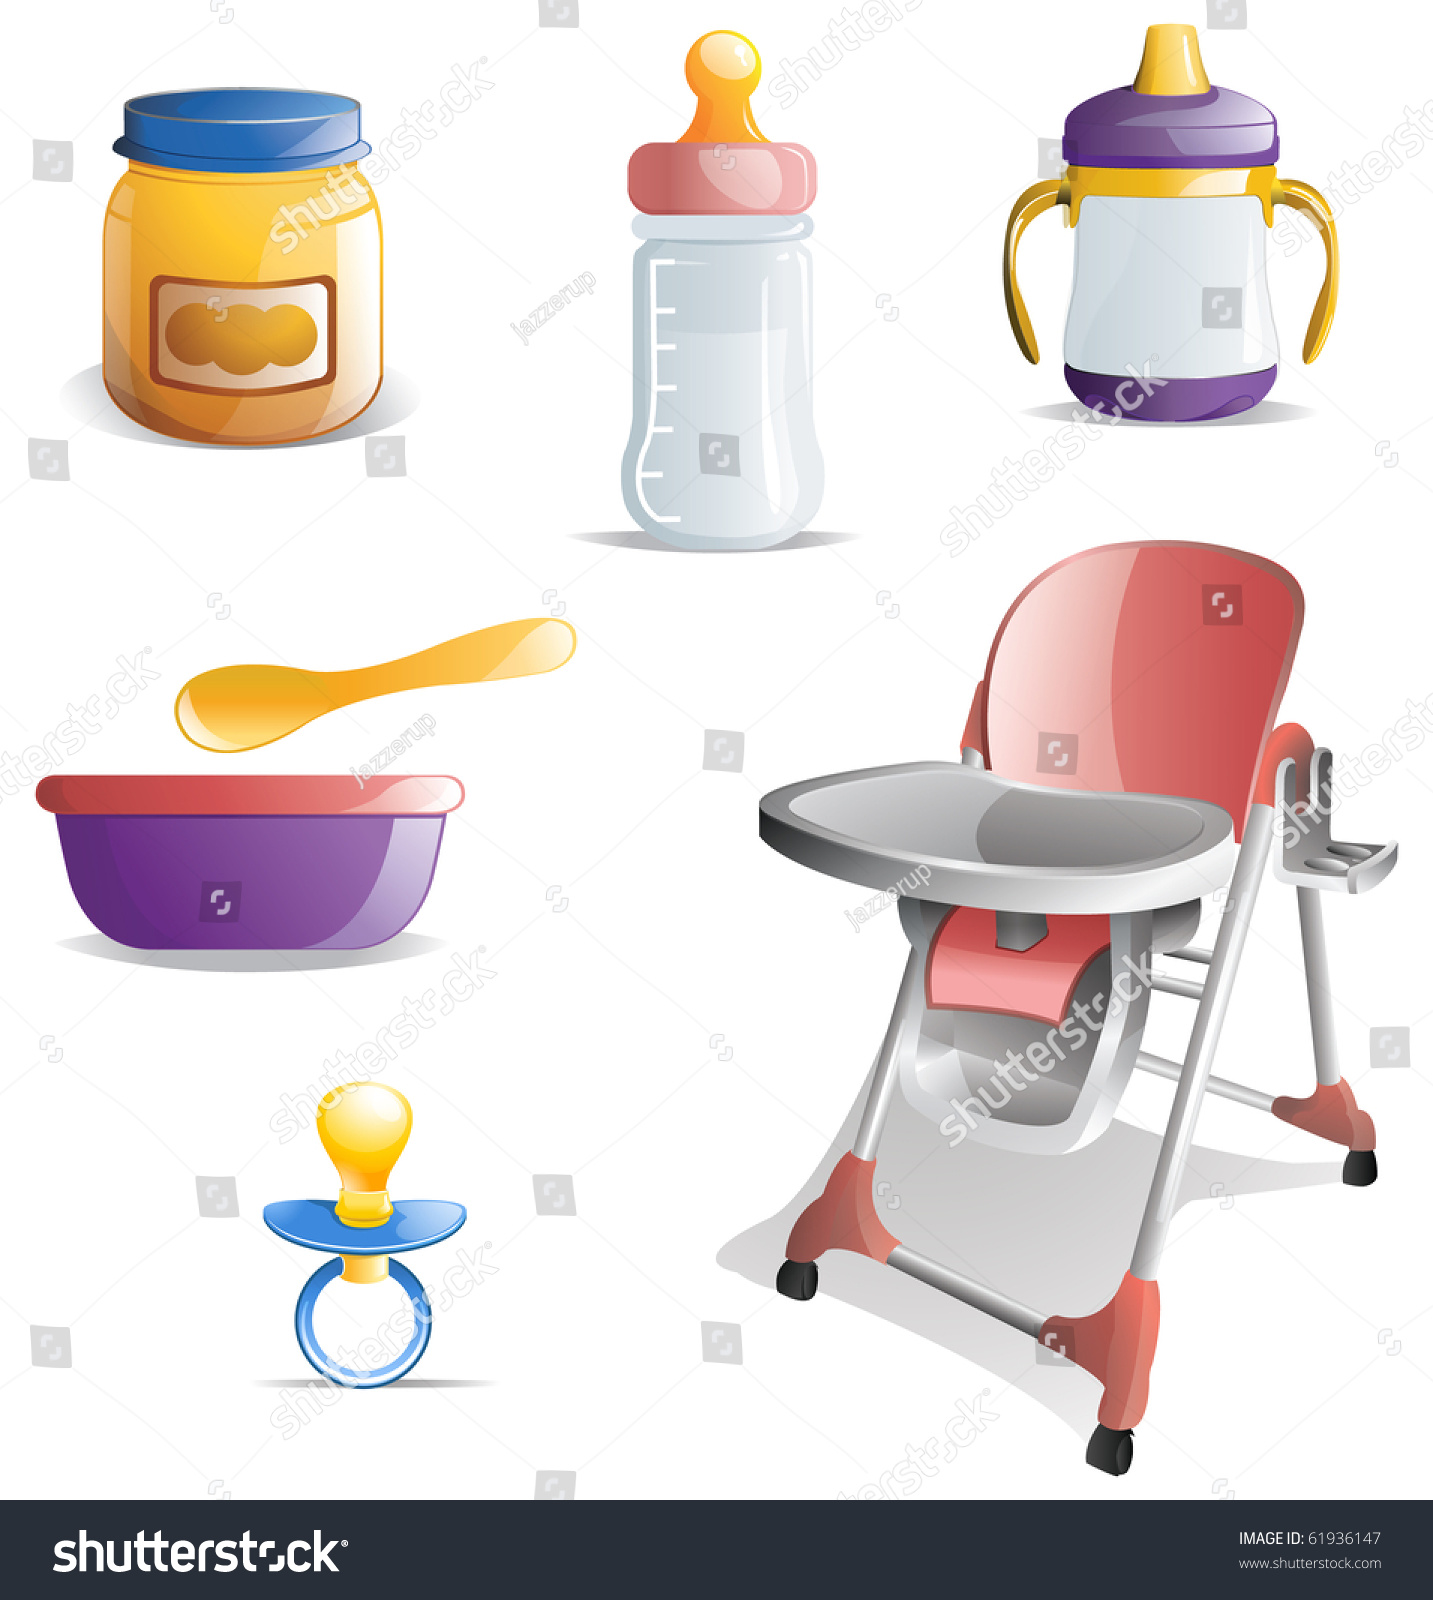 Baby Food Chair Variety Of Baby Feeding Icons Including Baby Food Bottle